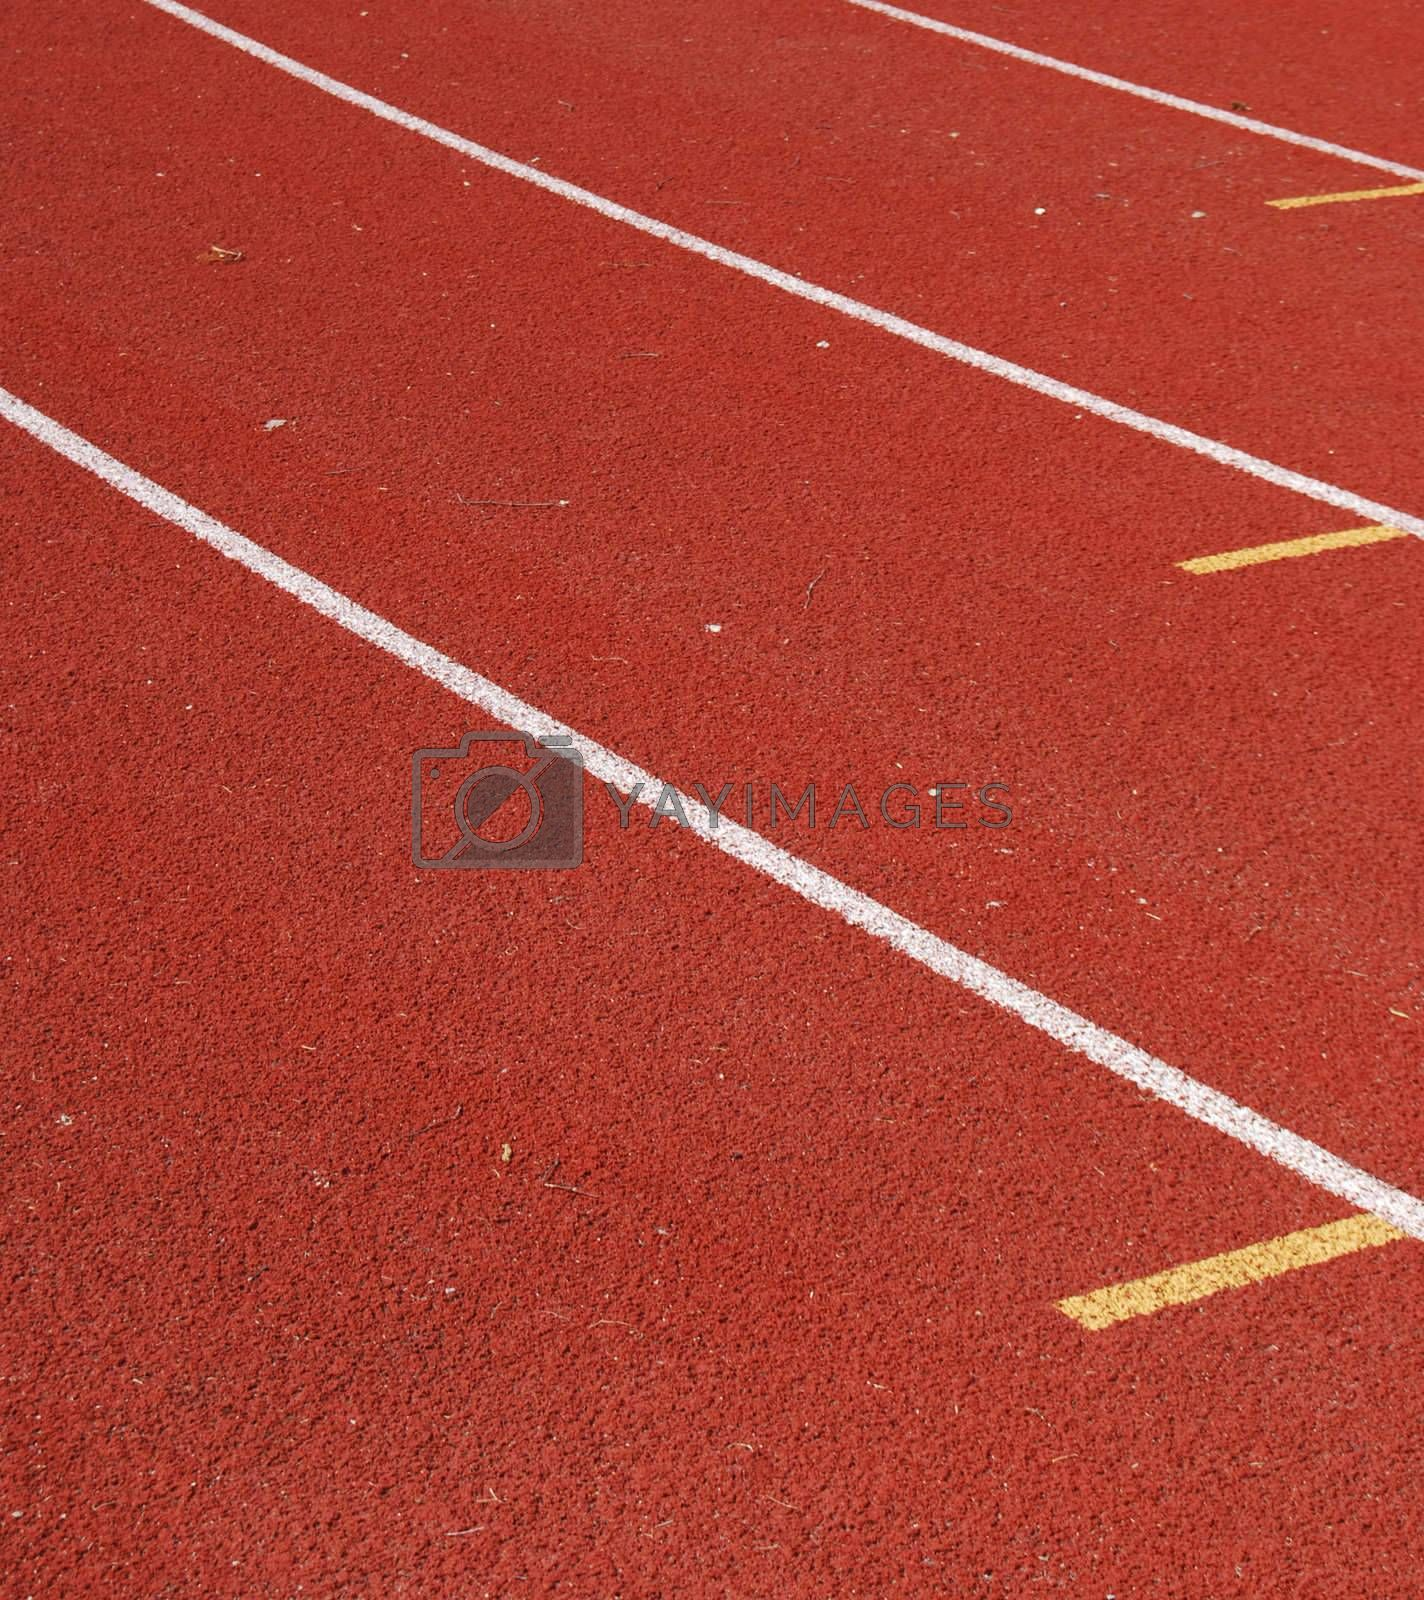 track and field by windmill